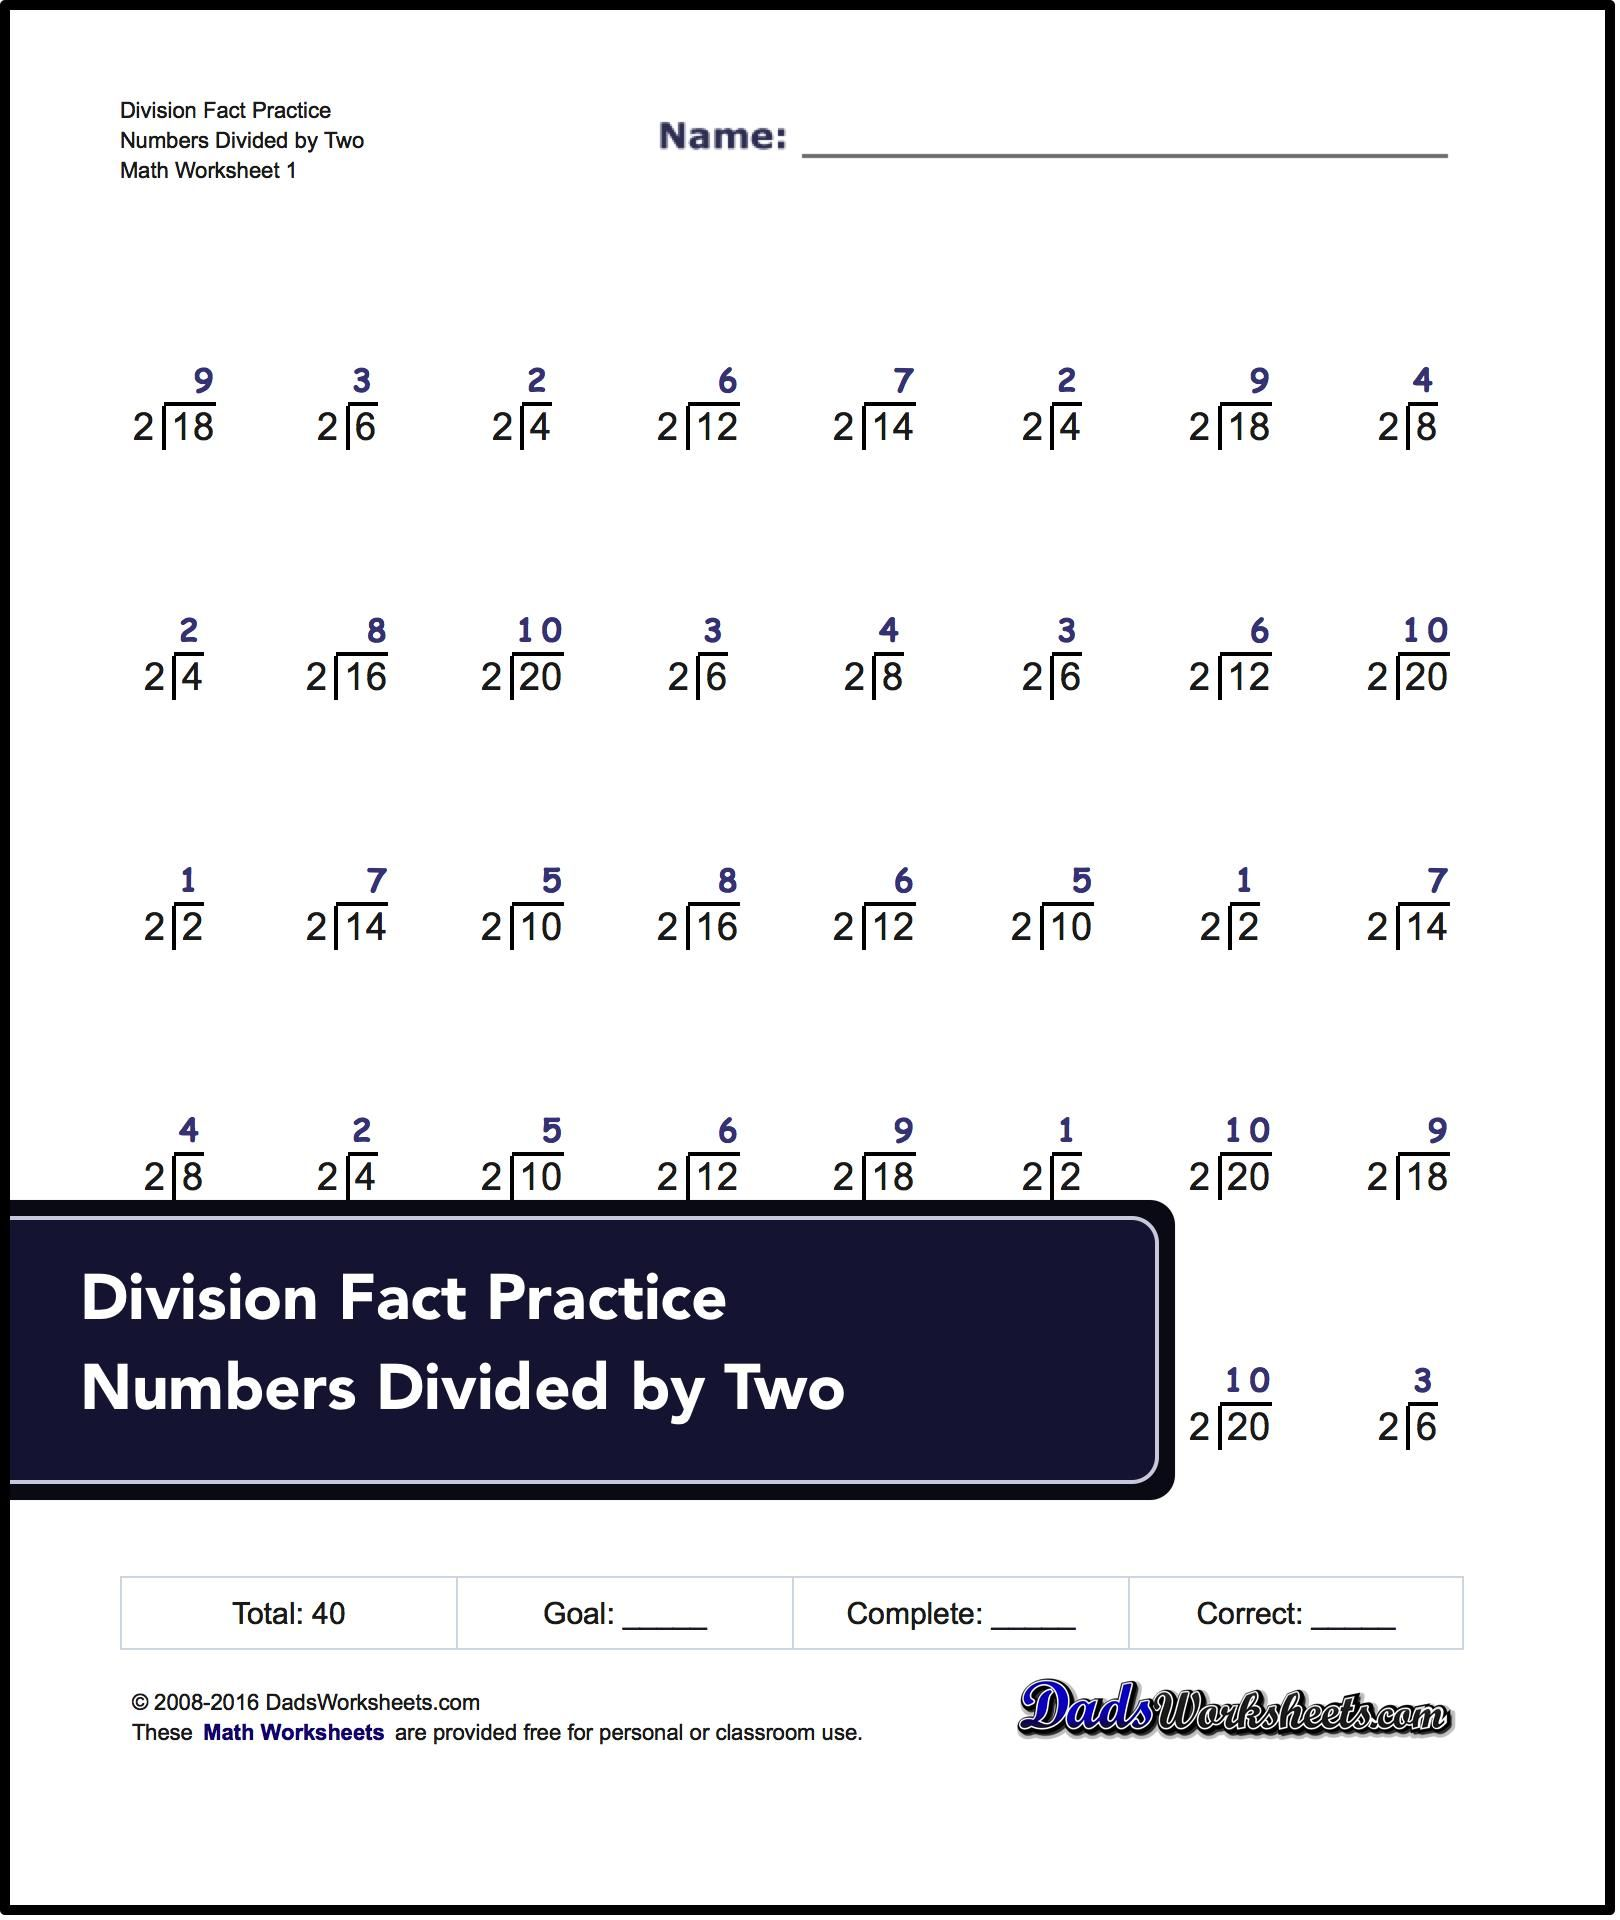 Basic Practice Division Worksheets Designed To Work As One